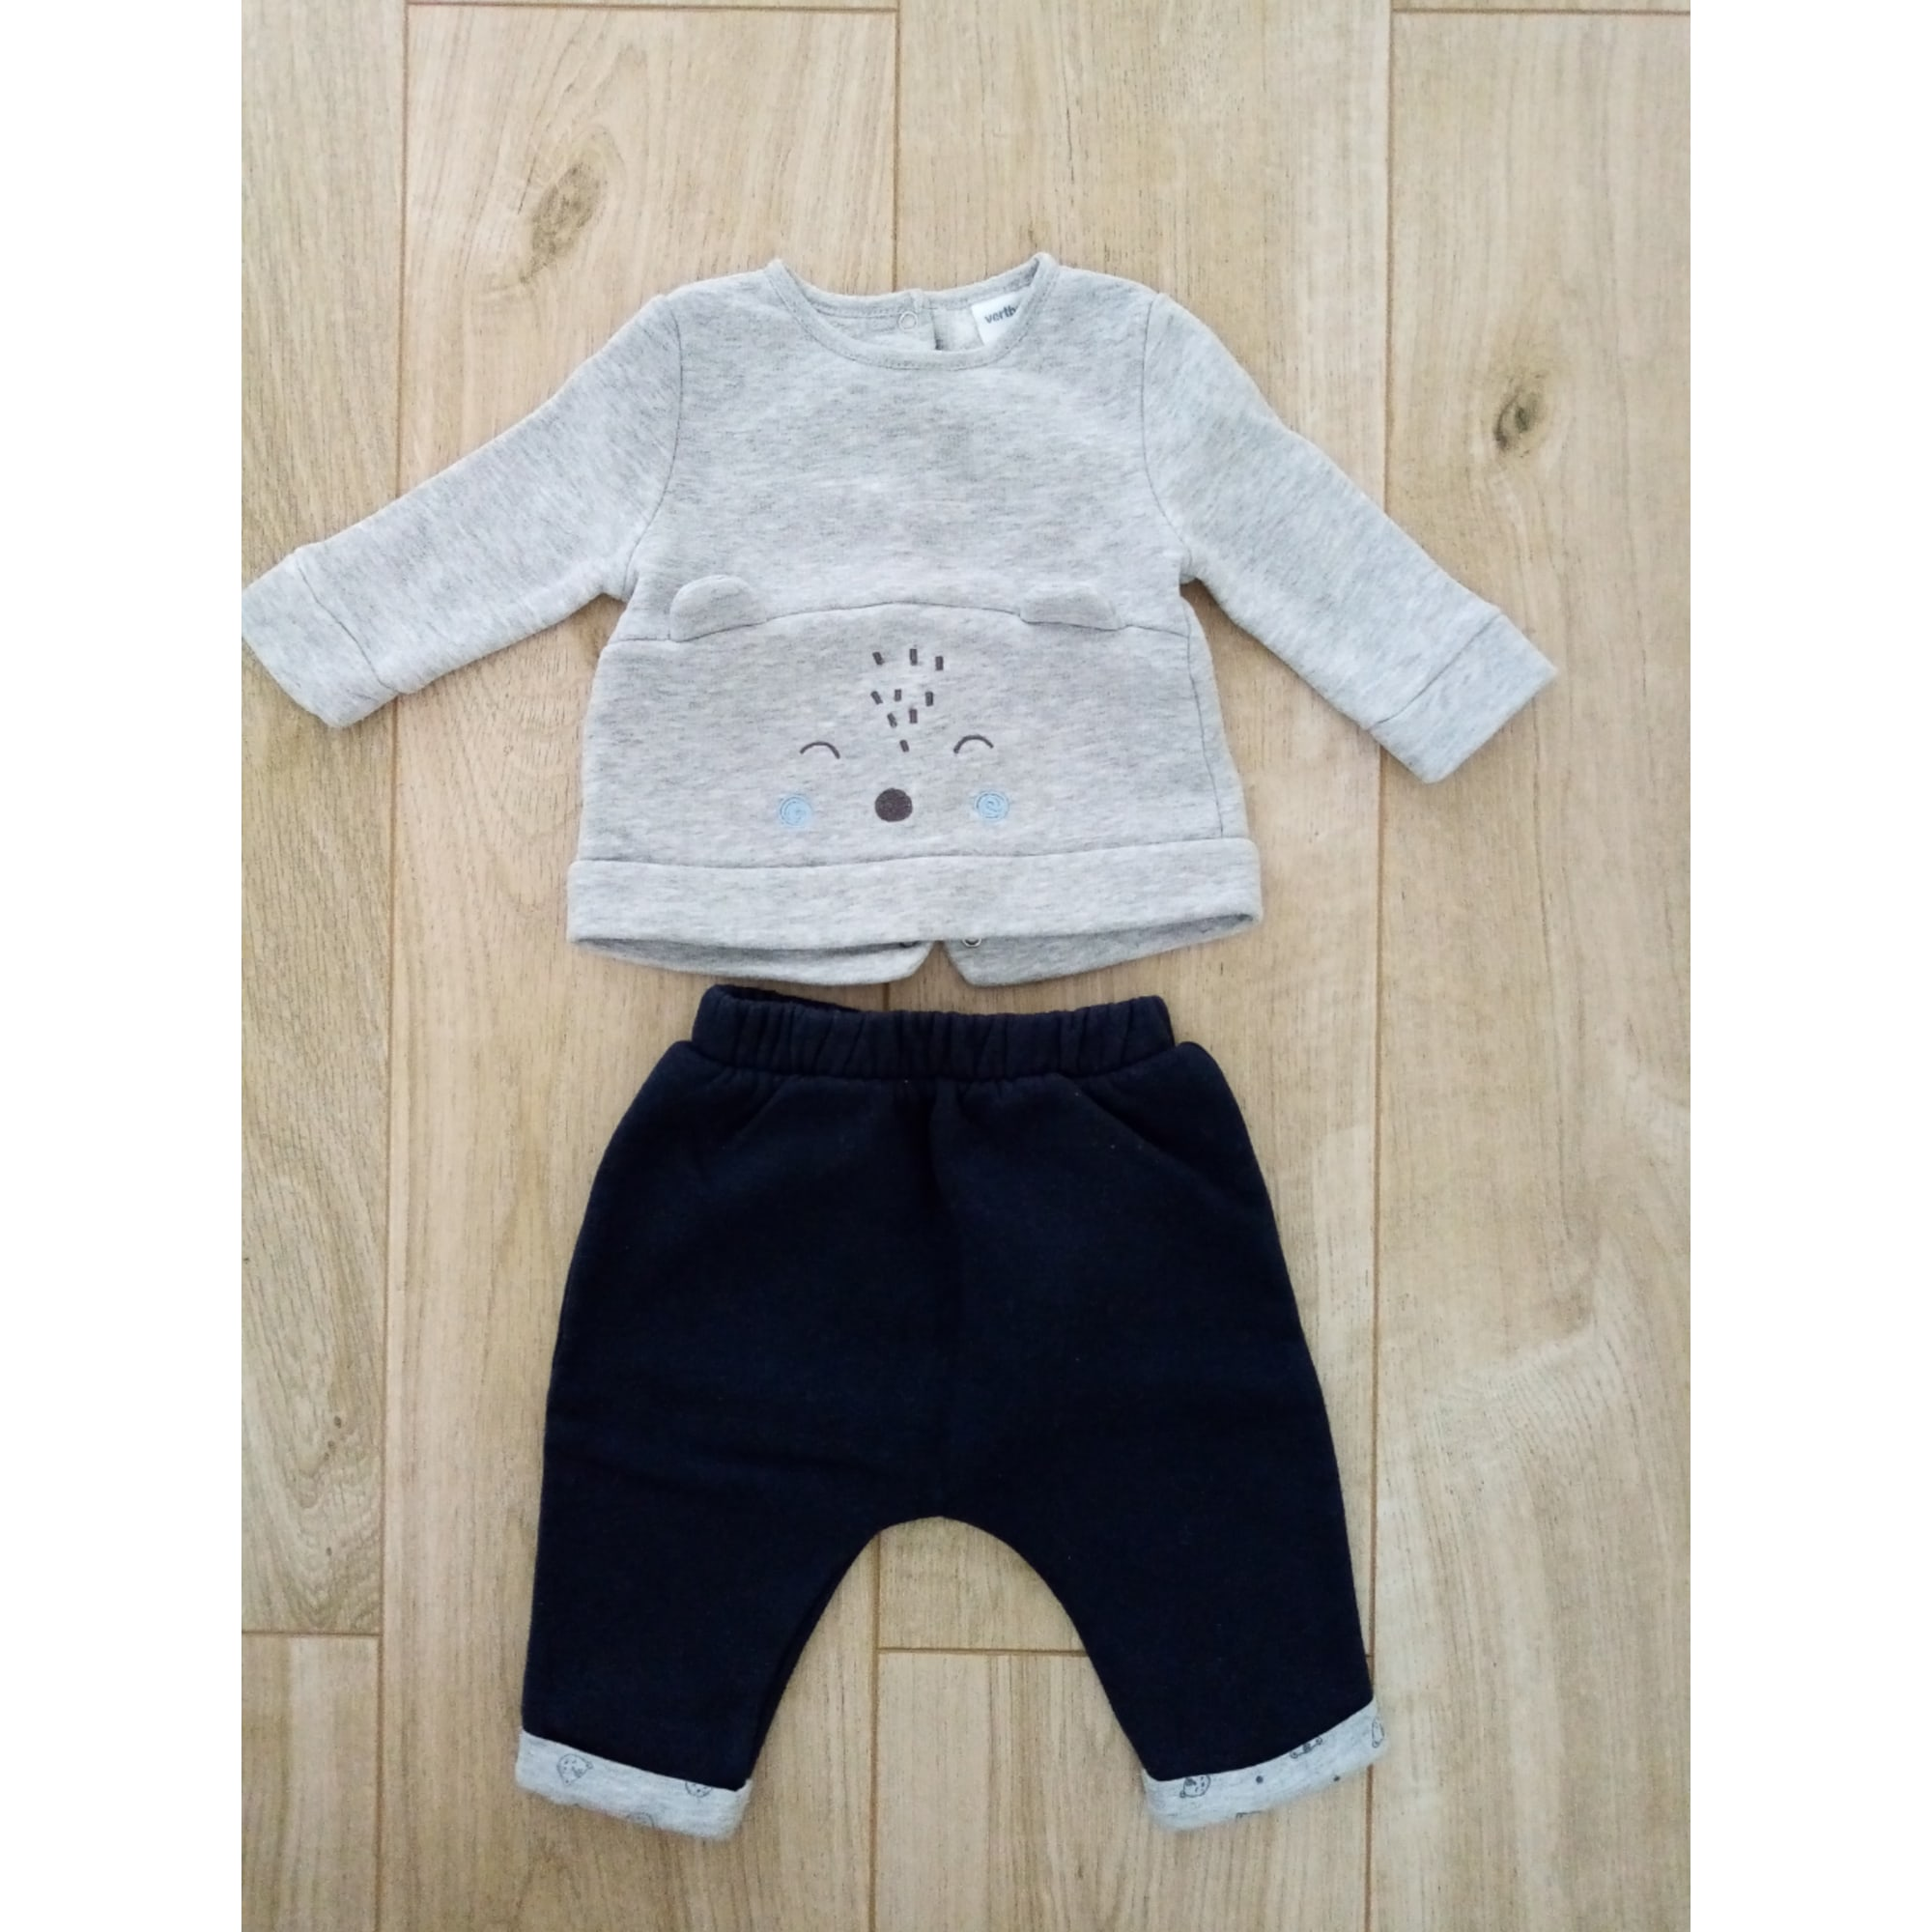 Pants Set, Outfit VERTBAUDET Gray, charcoal